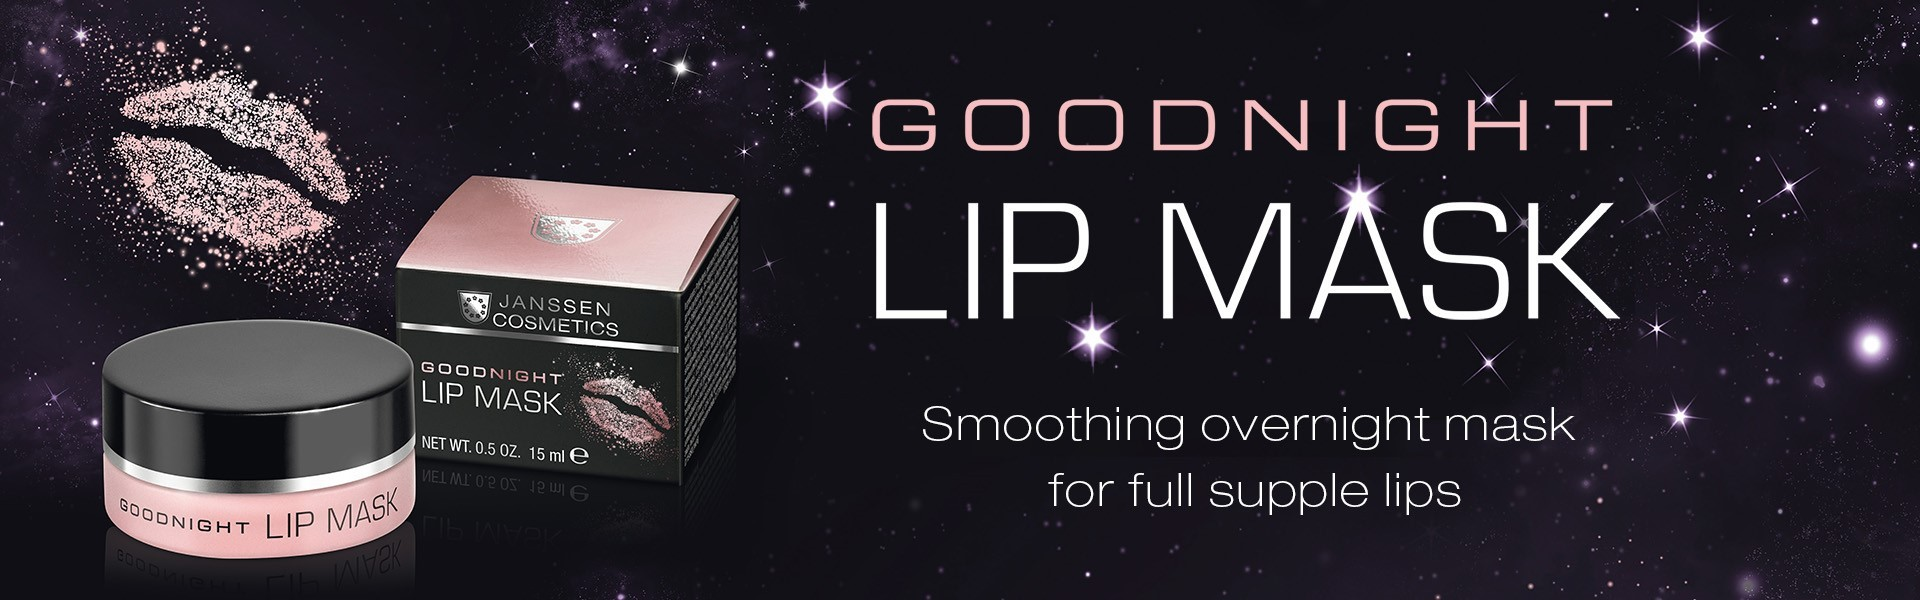 en_goodnightlipmask